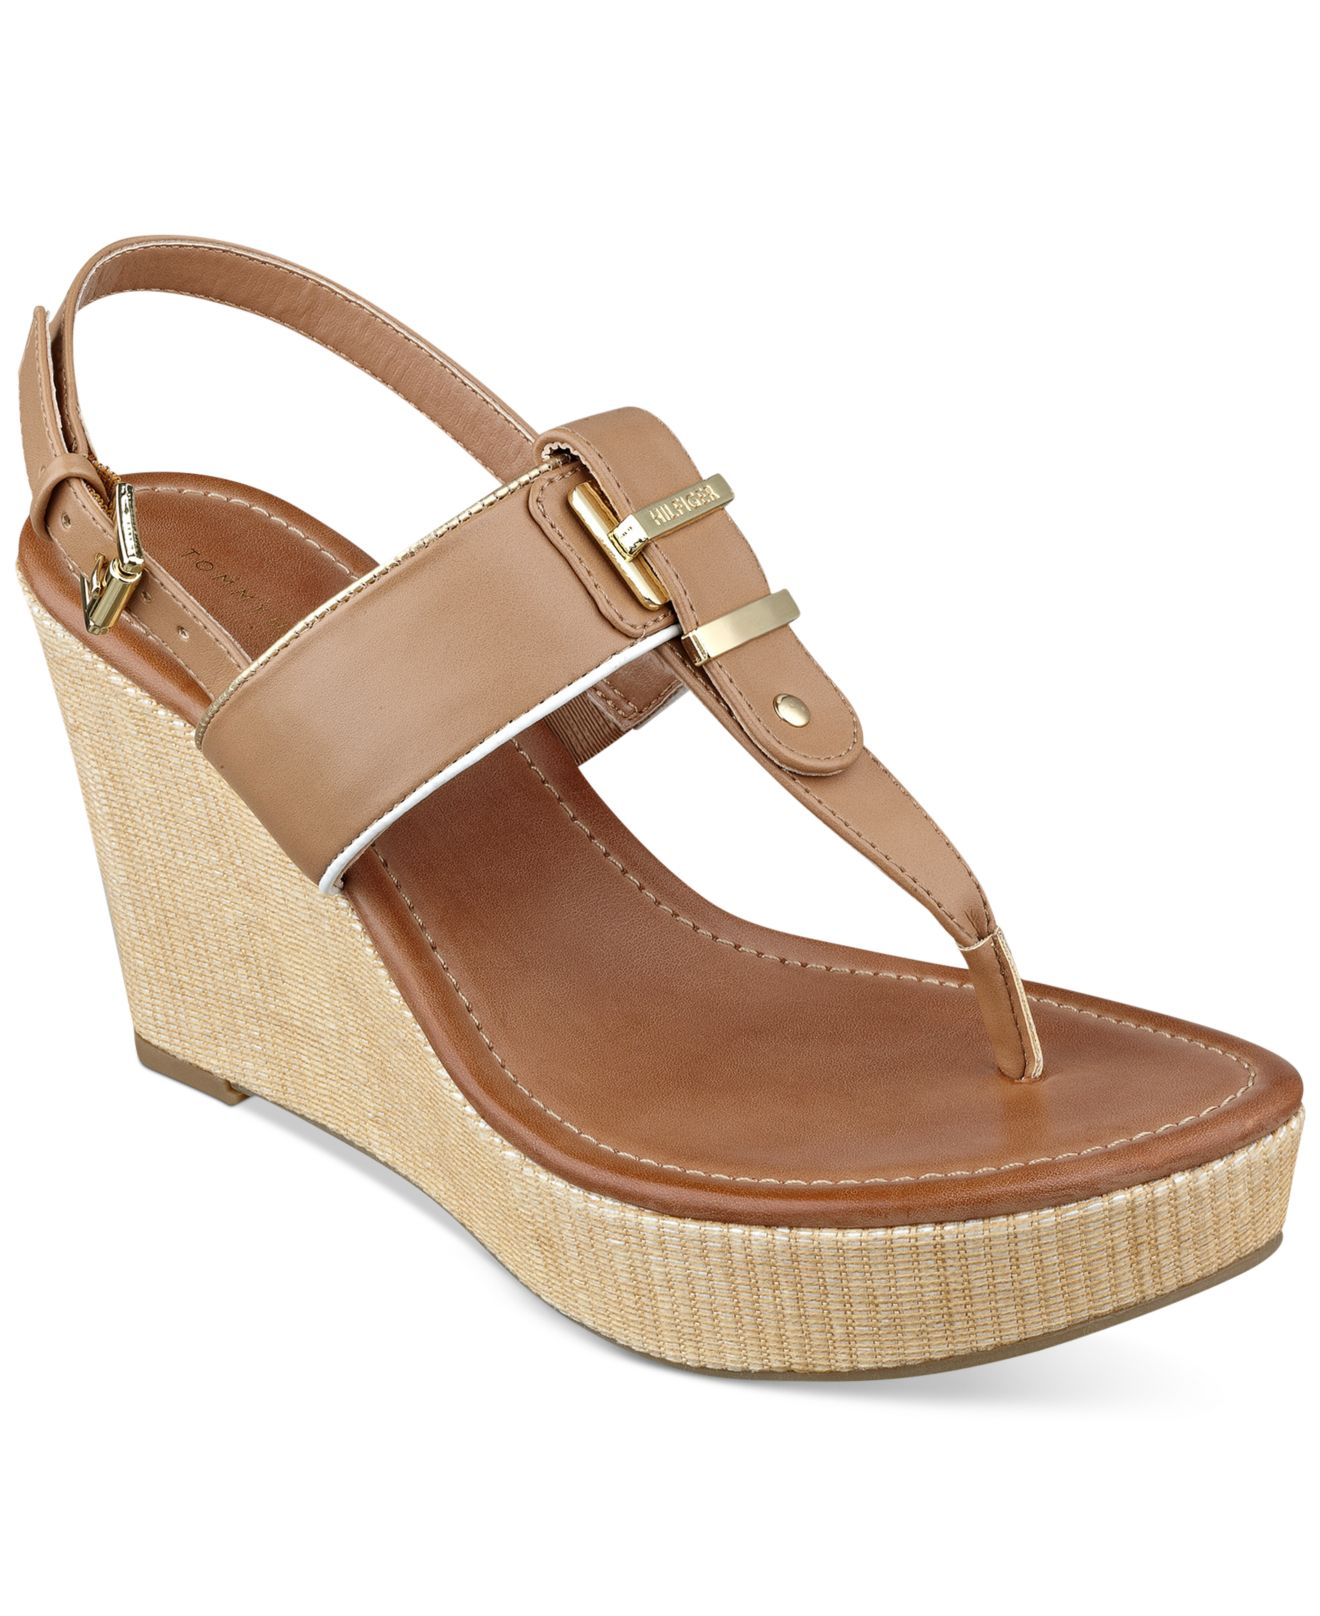 Wedge Thong Sandals Sale: Save Up to 50% Off! Shop celebtubesnews.ml's huge selection of Wedge Thong Sandals - Over styles available. FREE Shipping & Exchanges, and a % price guarantee!